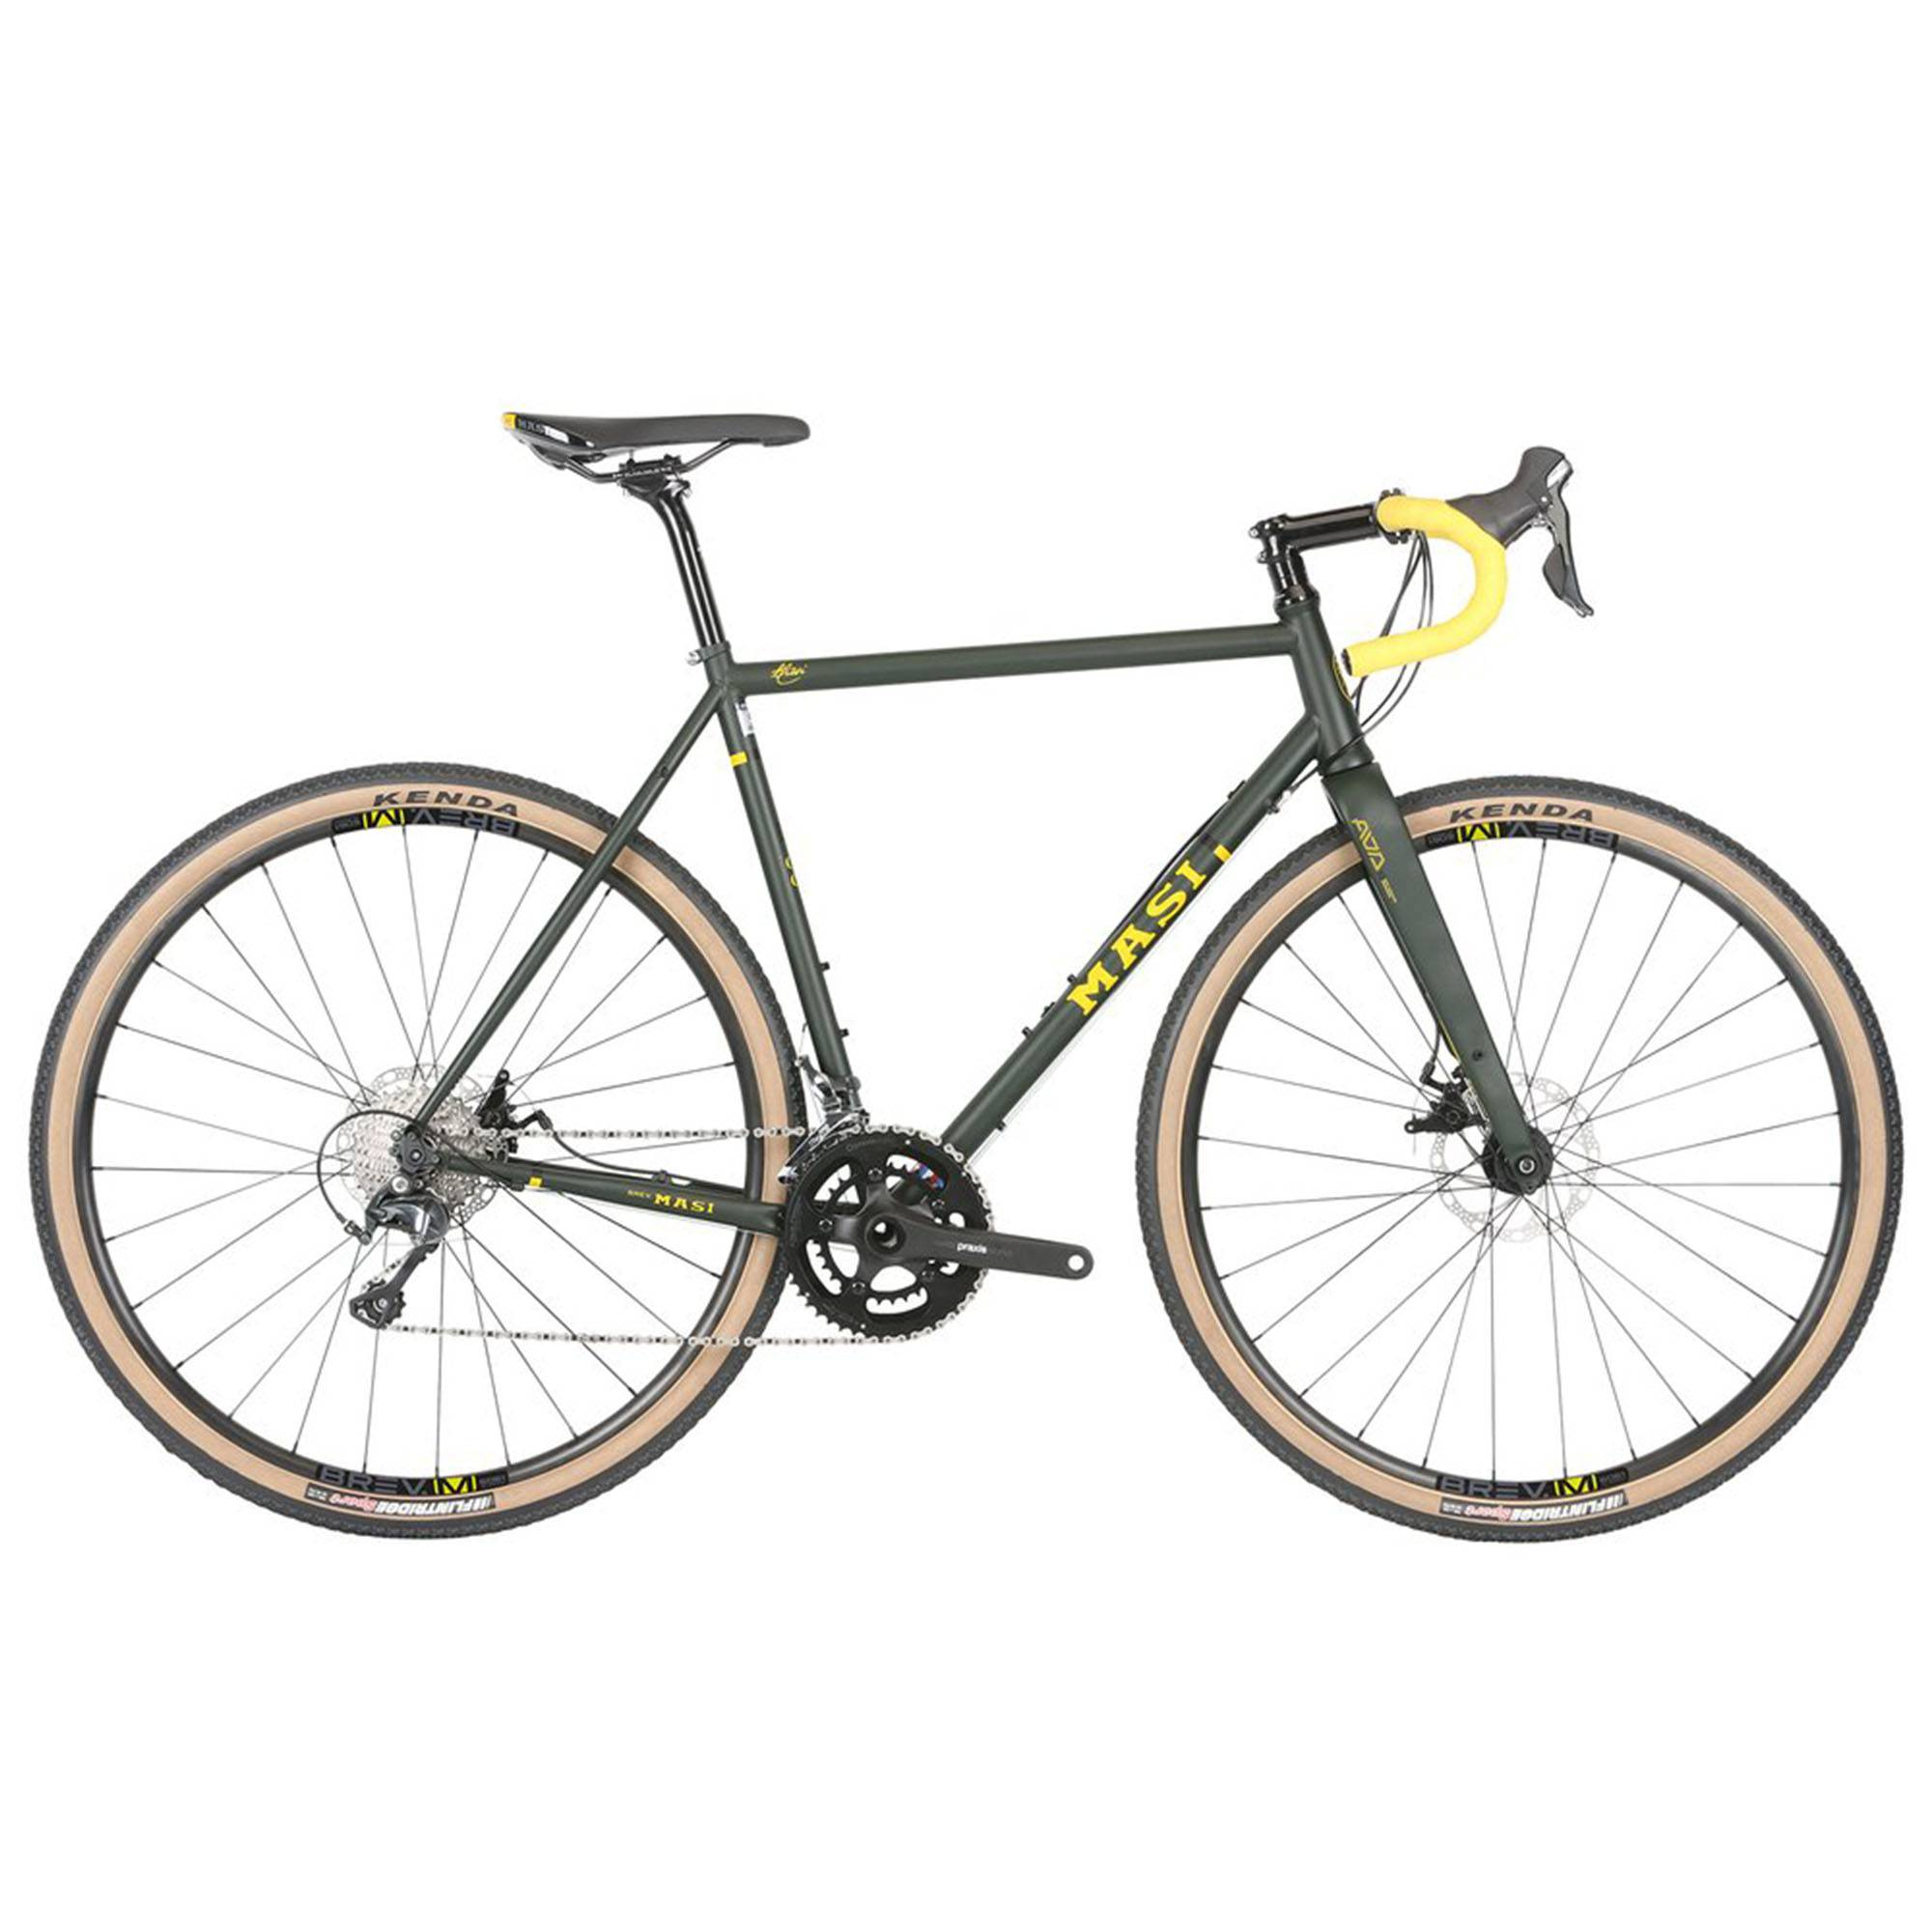 Masi CXGR Expert Gravel Bike '20  - Green - Size: 56